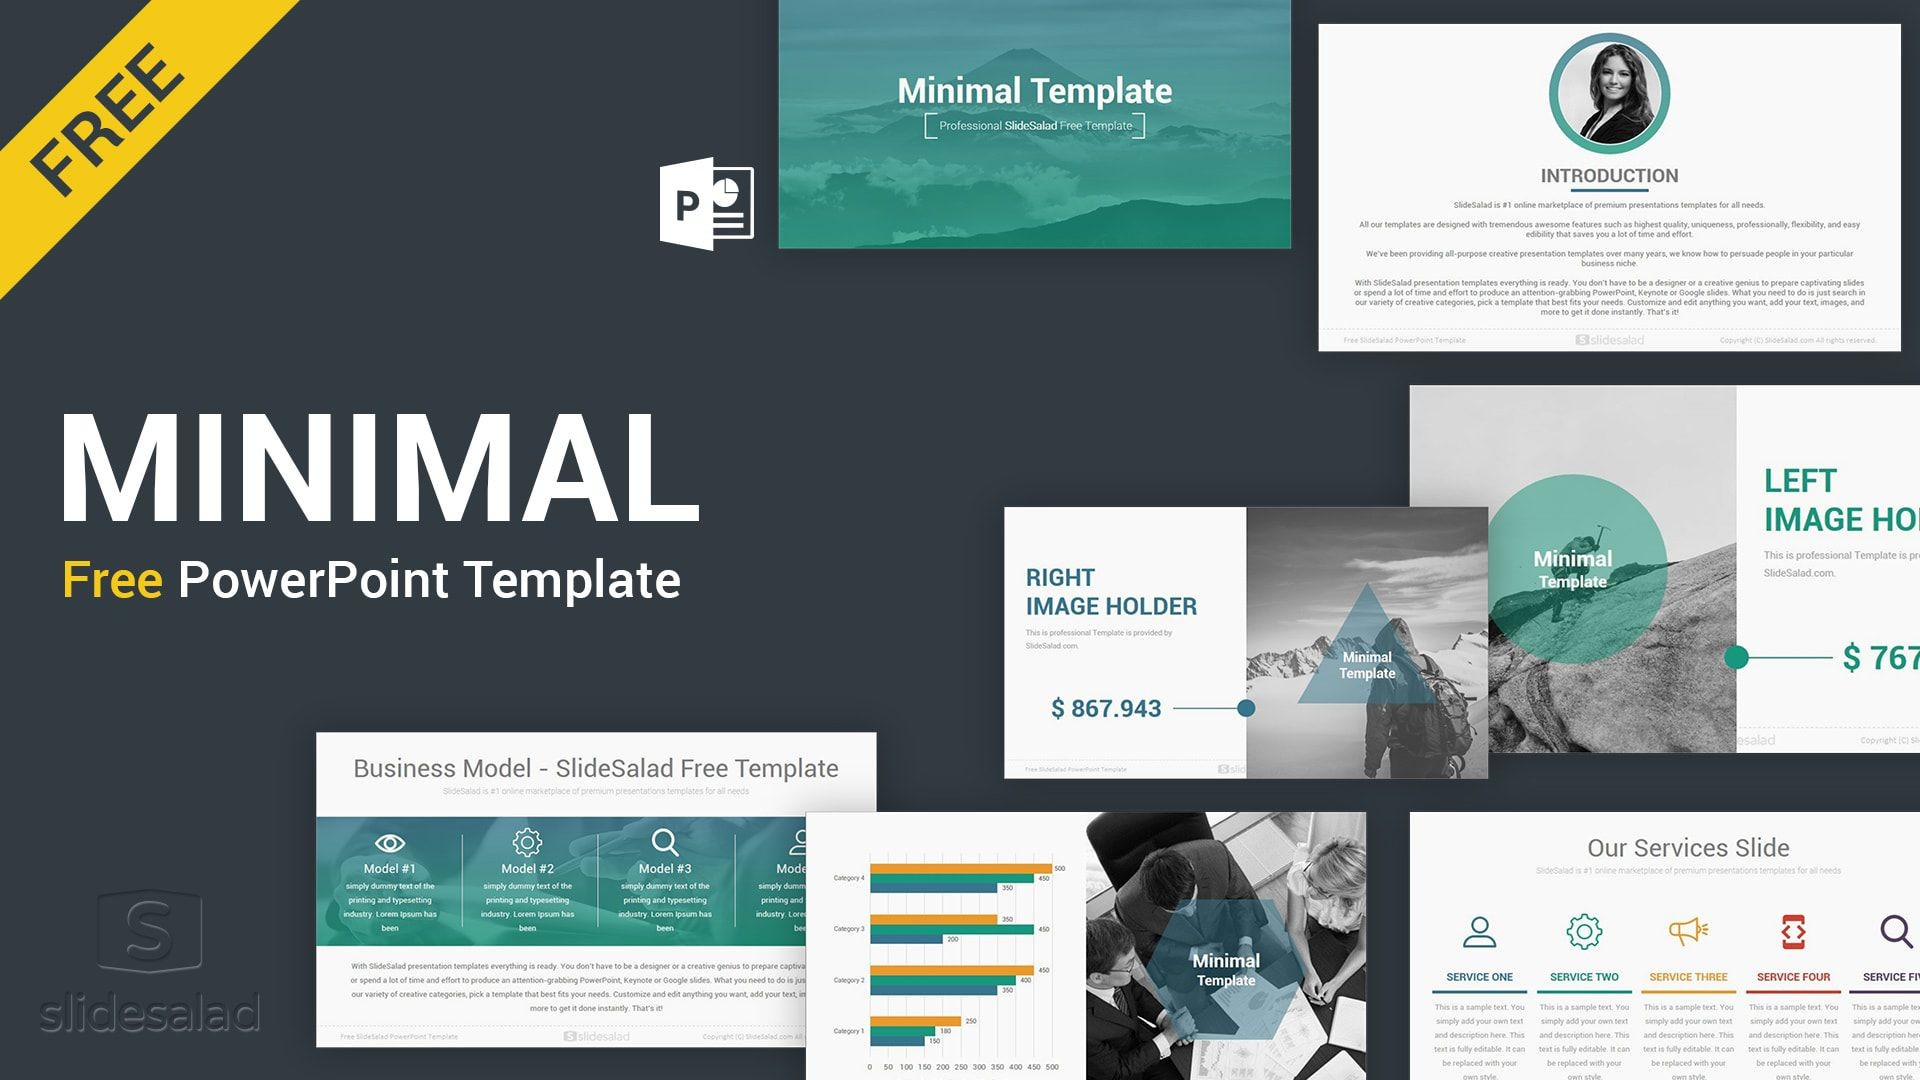 008 Fearsome Free Powerpoint Presentation Template Photo  Templates 22 Slide For The Perfect Busines Strategy Download Engineering1920